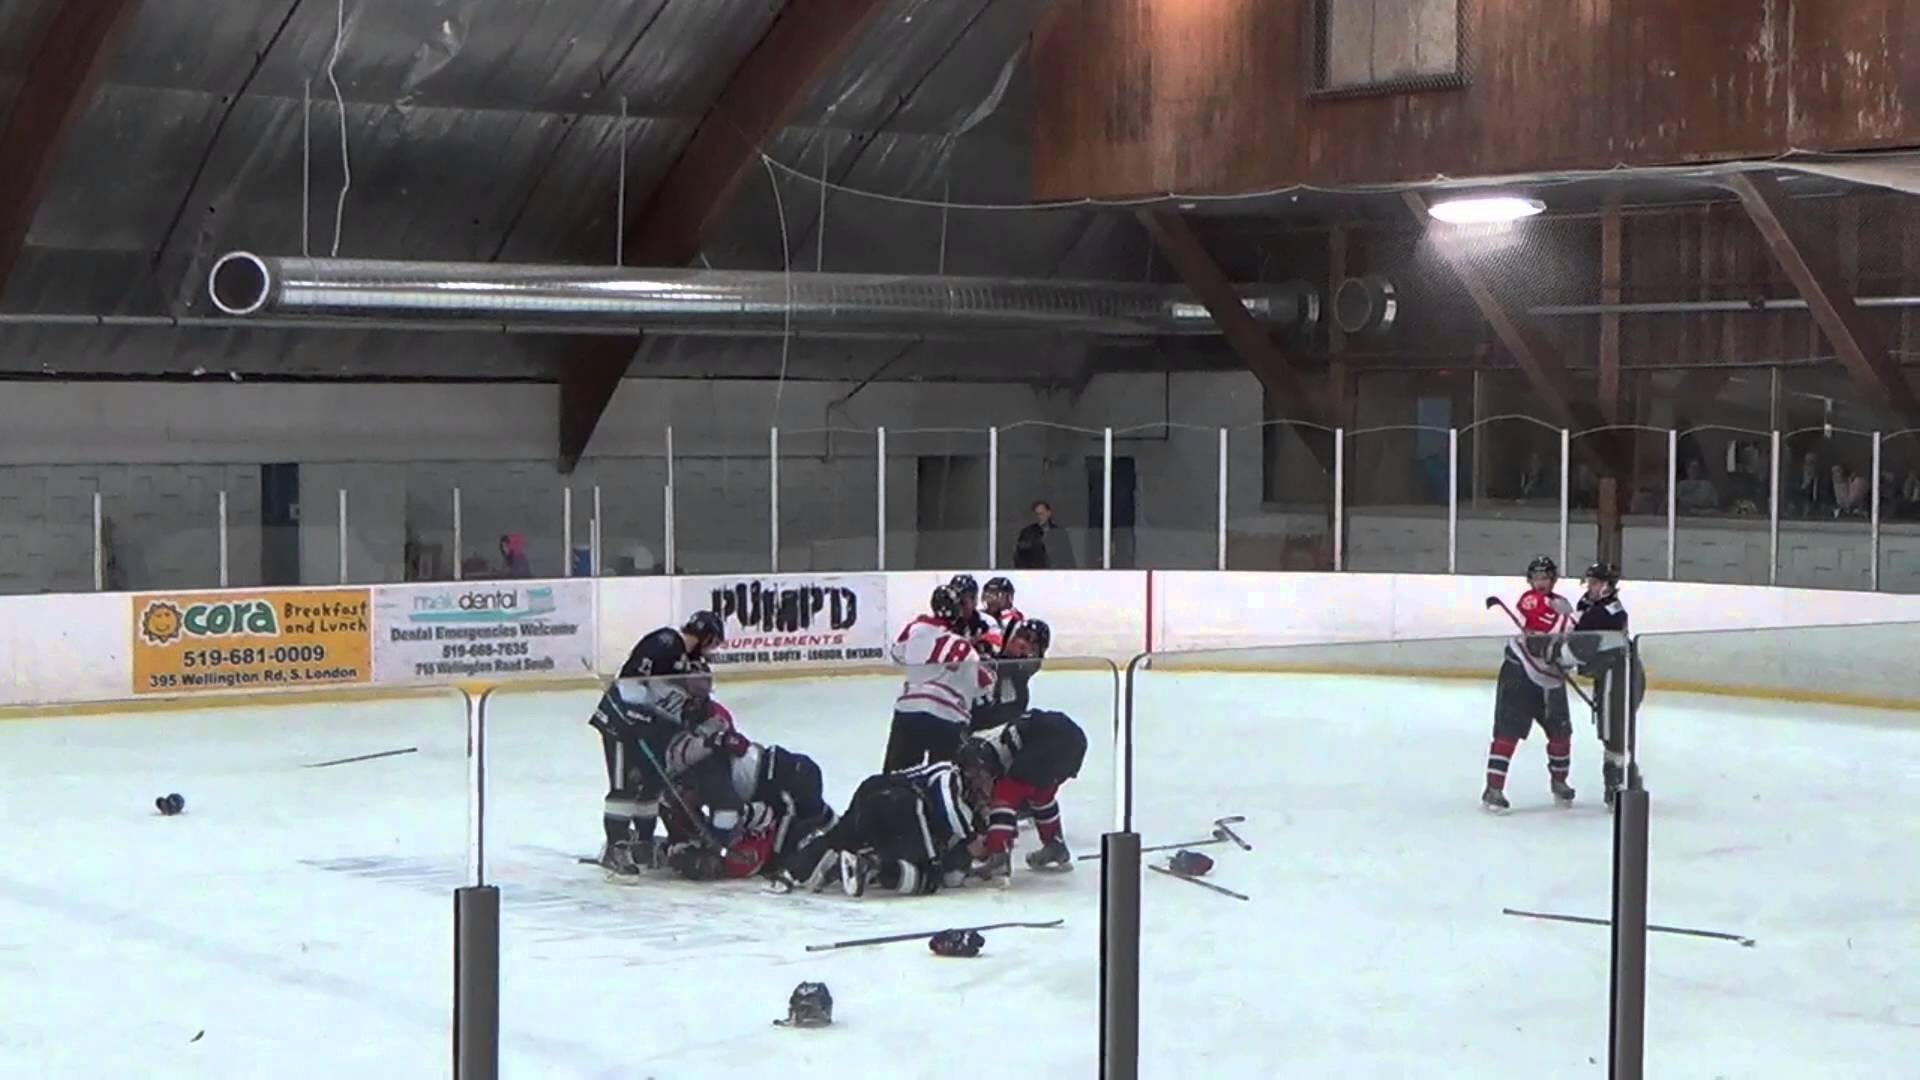 Massive hockey brawl breaks out involving players, refs & trainers